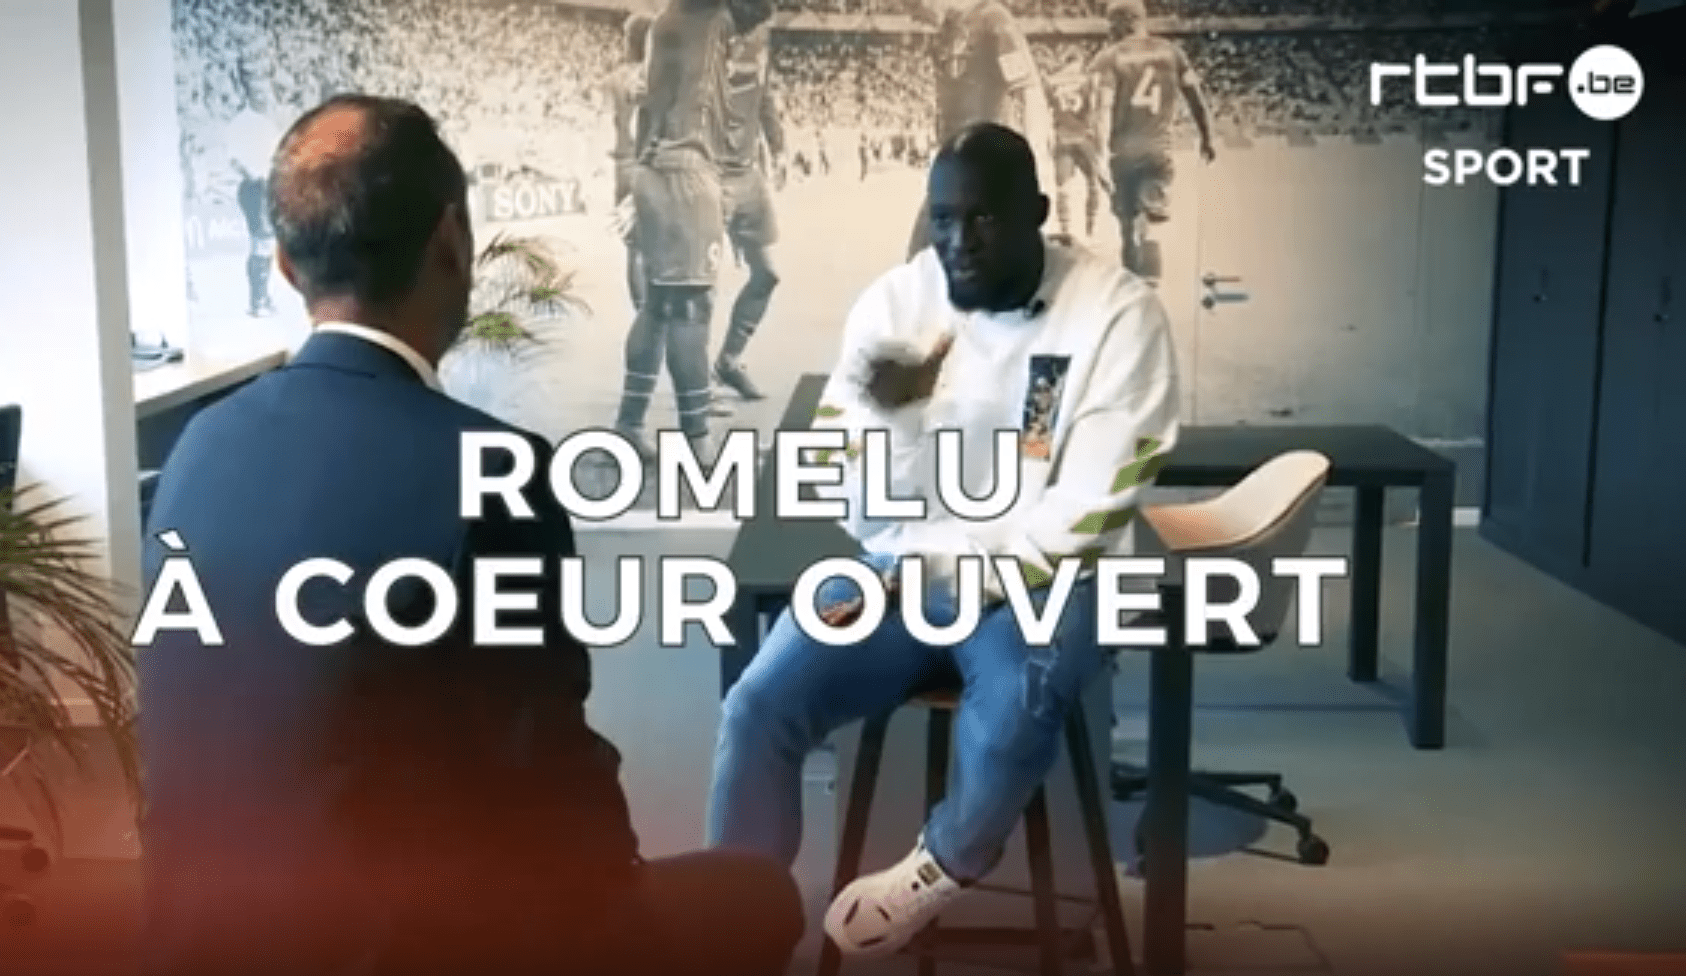 Romelu Lukaku interviewed by RTBF Sport at CRESTA's office